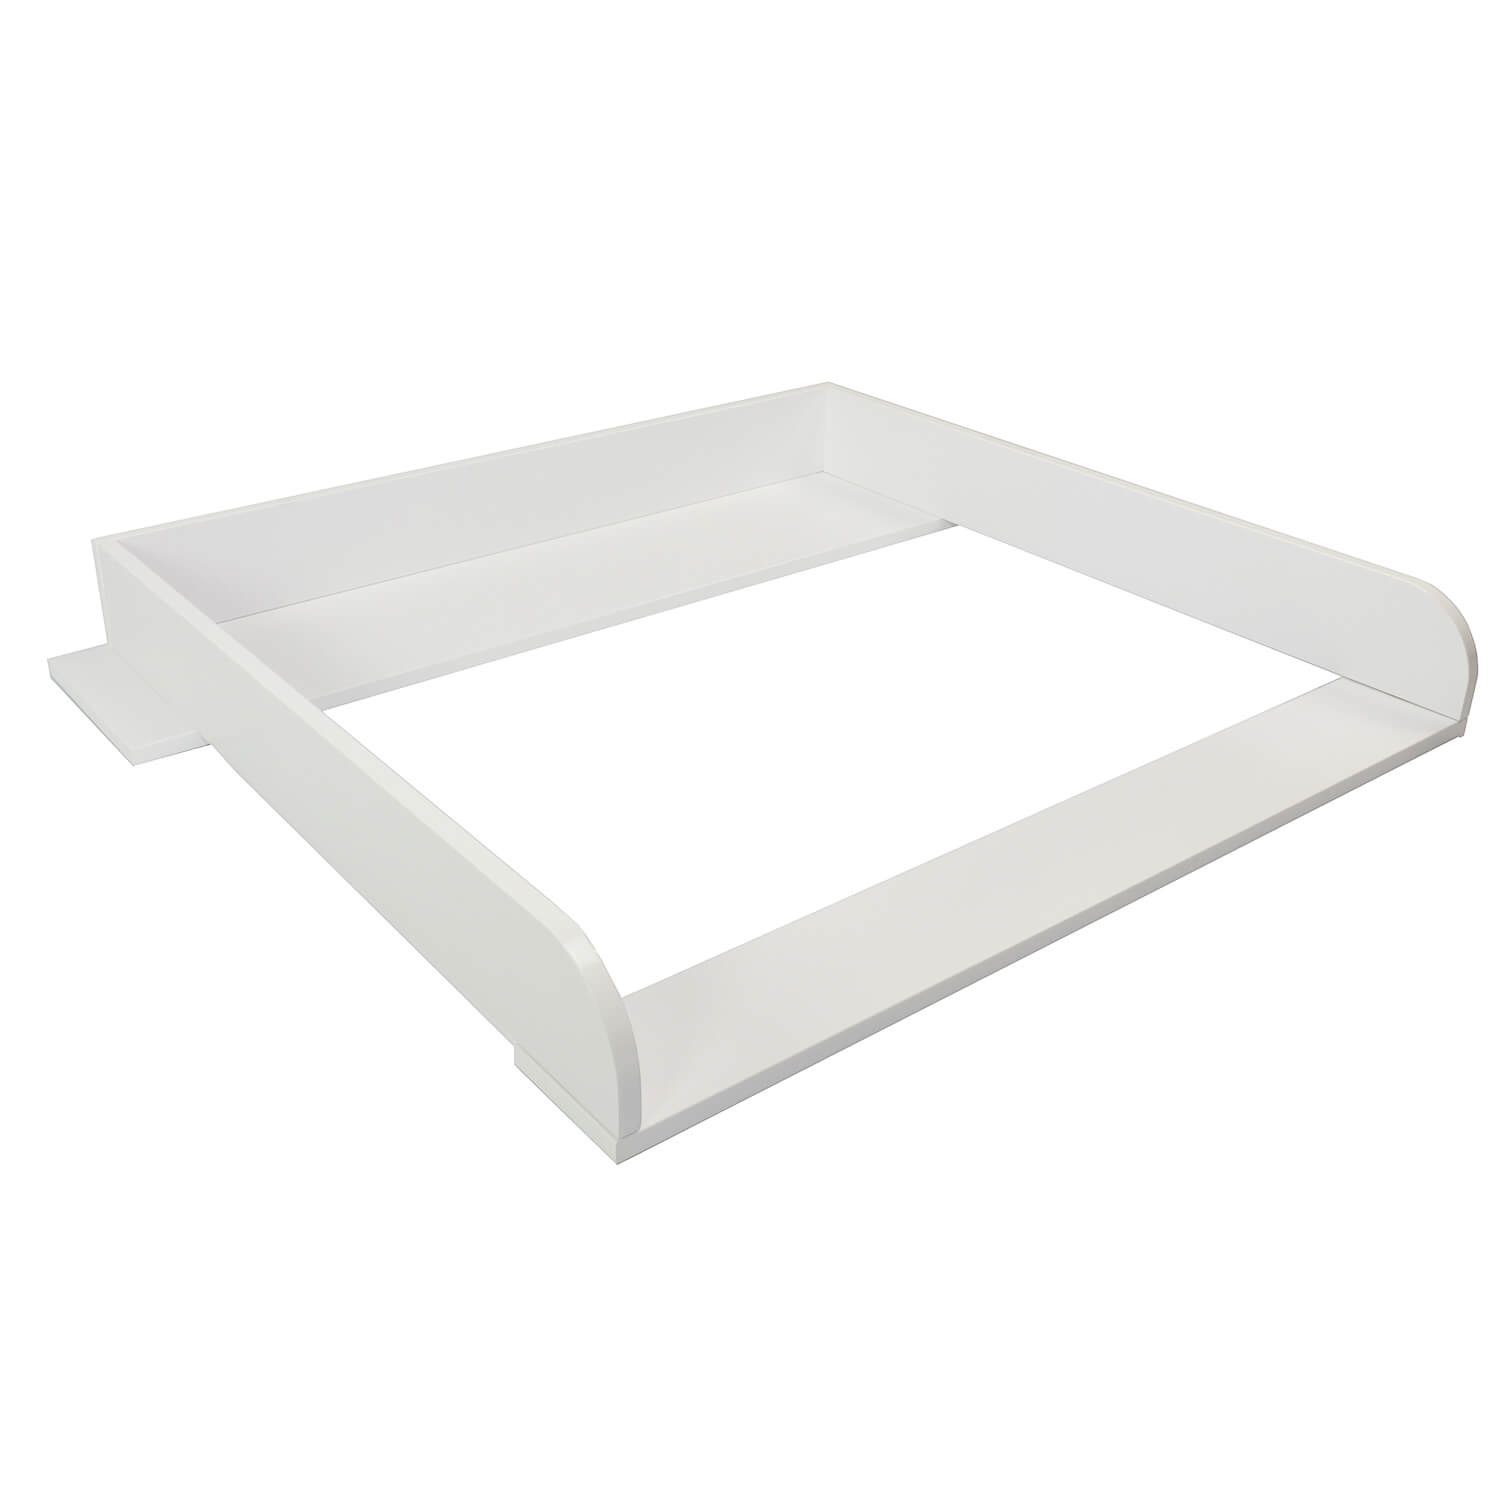 The Changing Top For Your Ikea Koppang Chest Of Drawers Puckdaddy